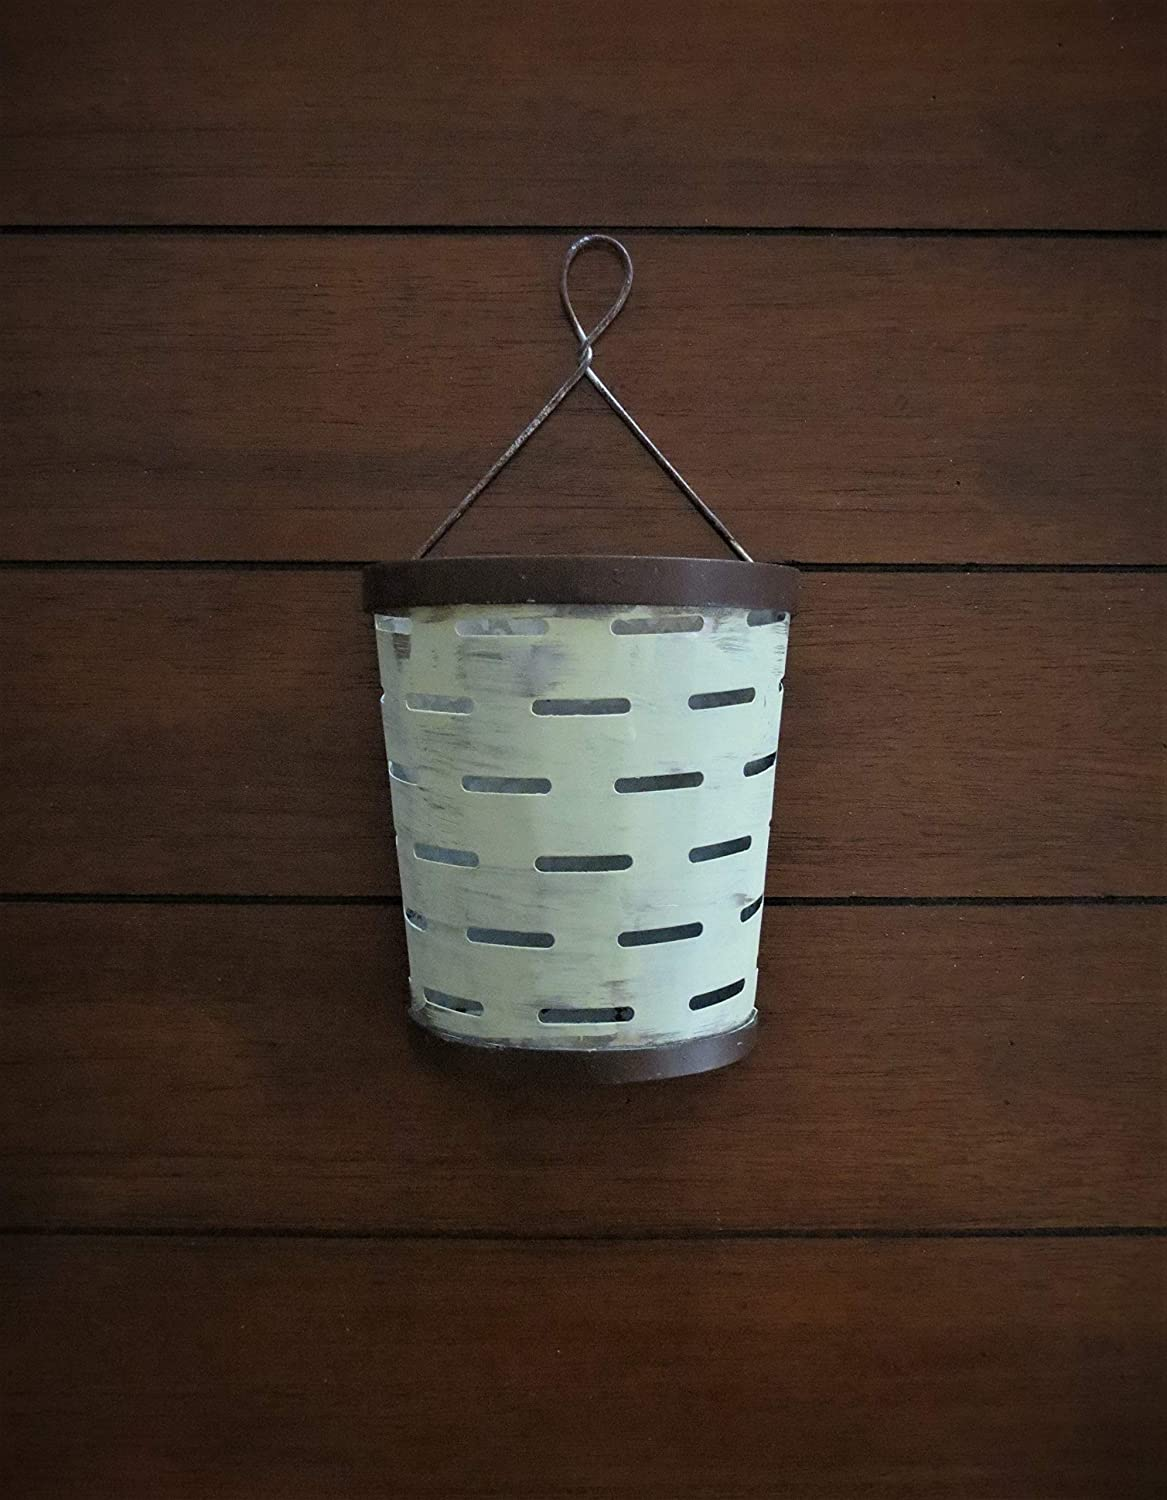 Ranking Ranking TOP1 TOP19 Galvanized Metal Olive Bucket Wall Handpaint Sconce Planter or